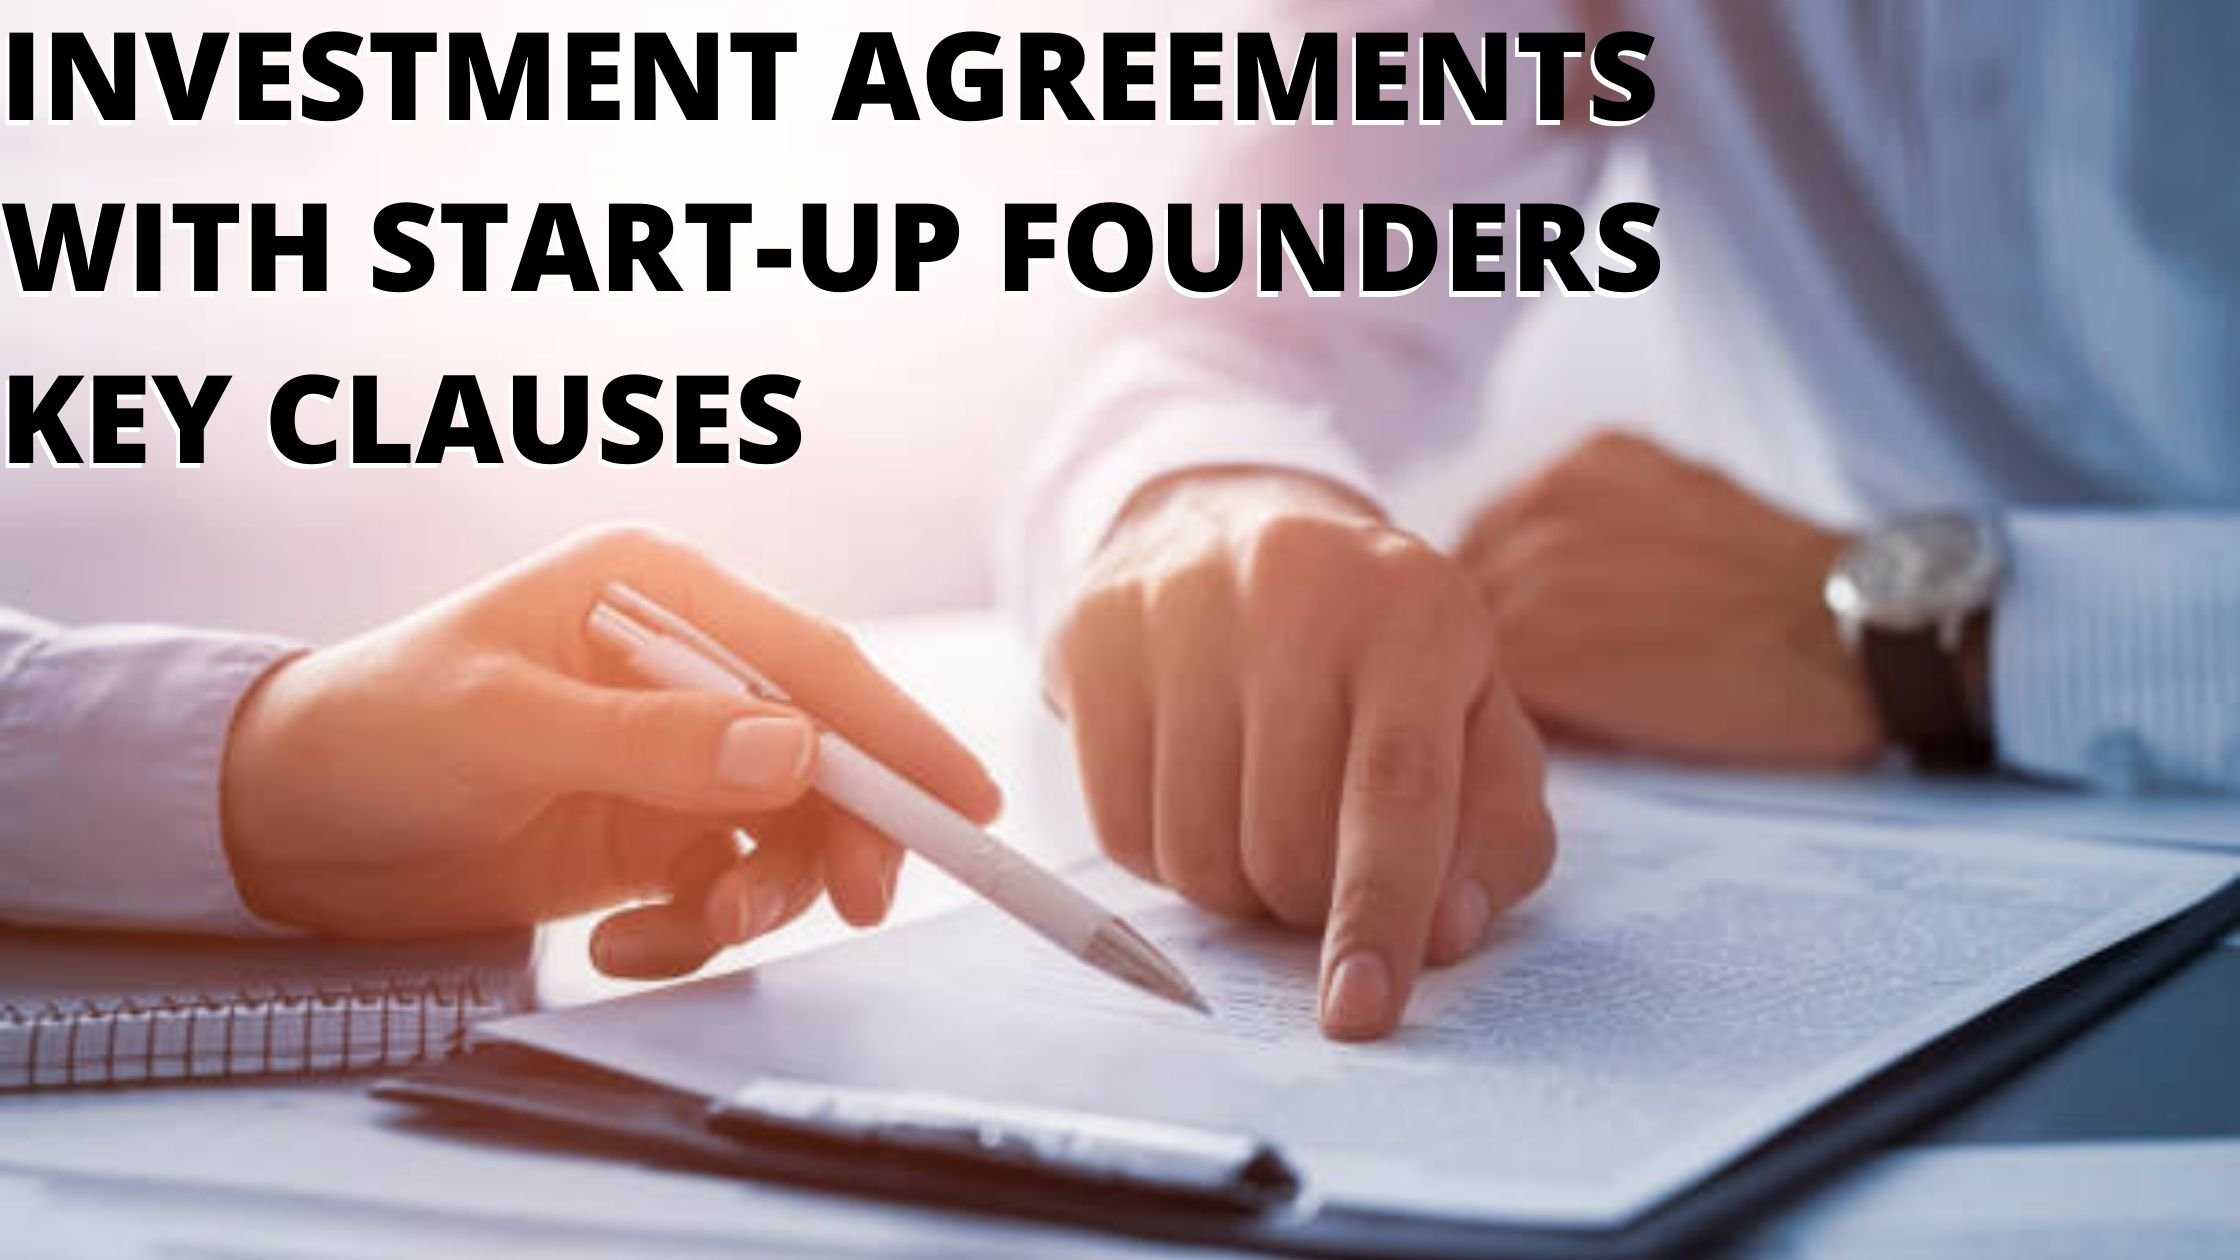 INVESTMENT AGREEMENTS WITH START-UP FOUNDERS KEY CLAUSES